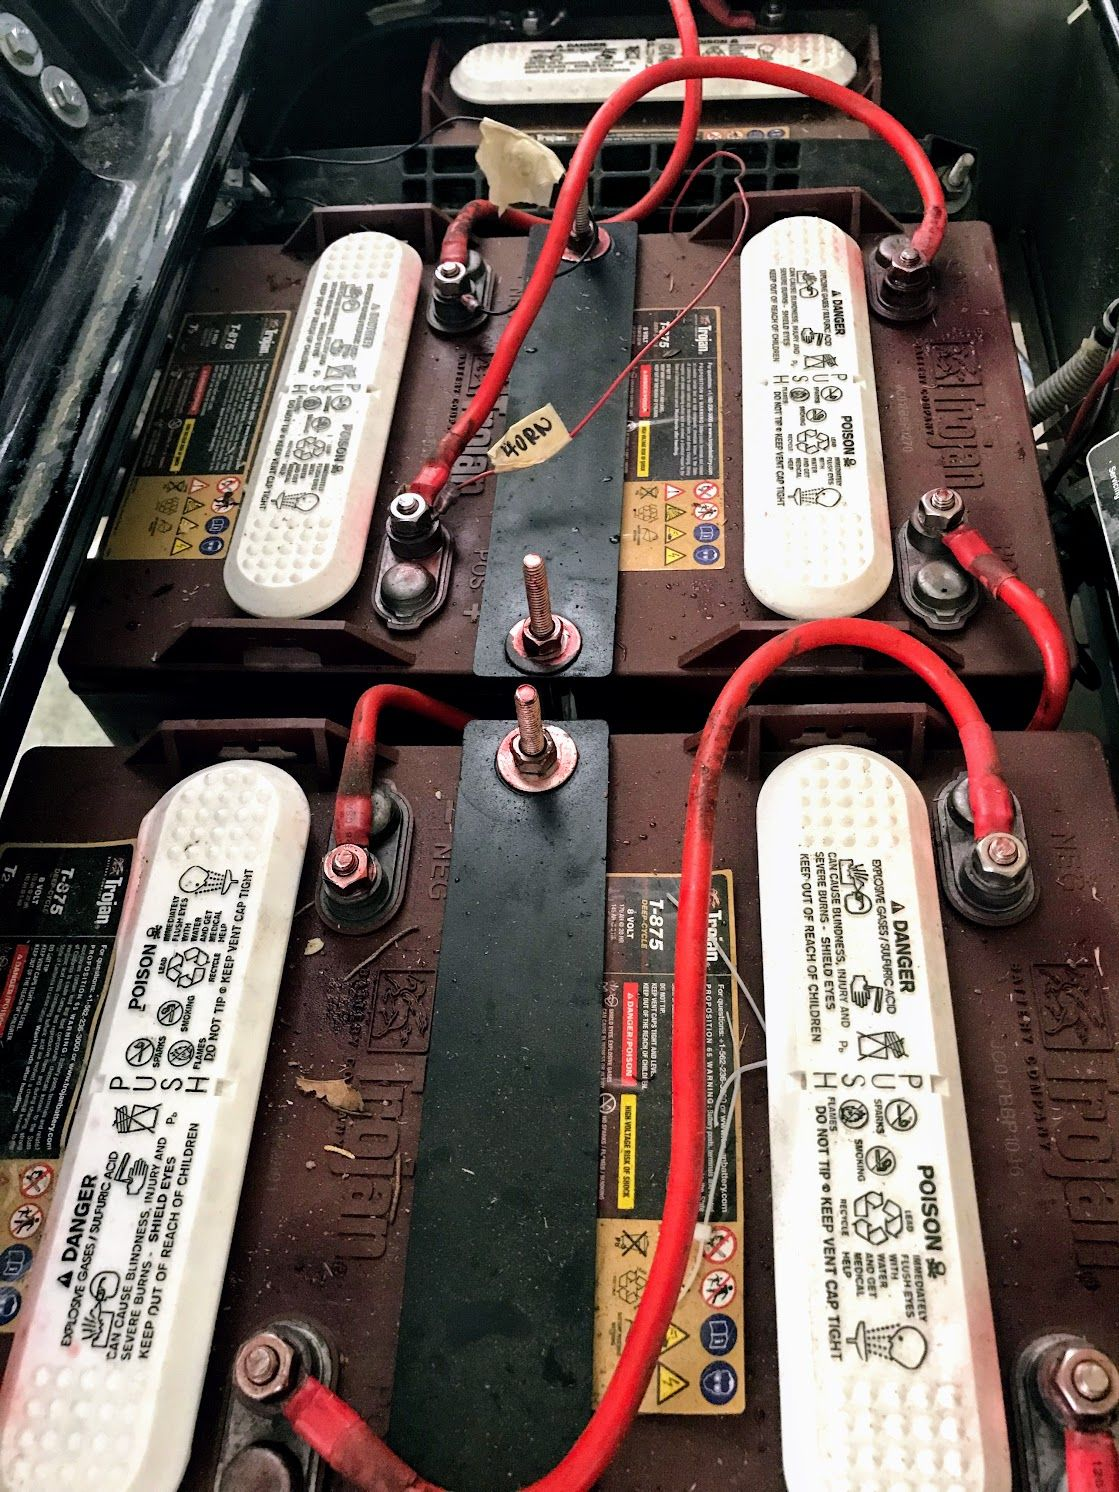 hight resolution of club car battery cables will need replacing or upgrading did you know a 4 gauge wire is thicker than a 6 gauge clubcarparts